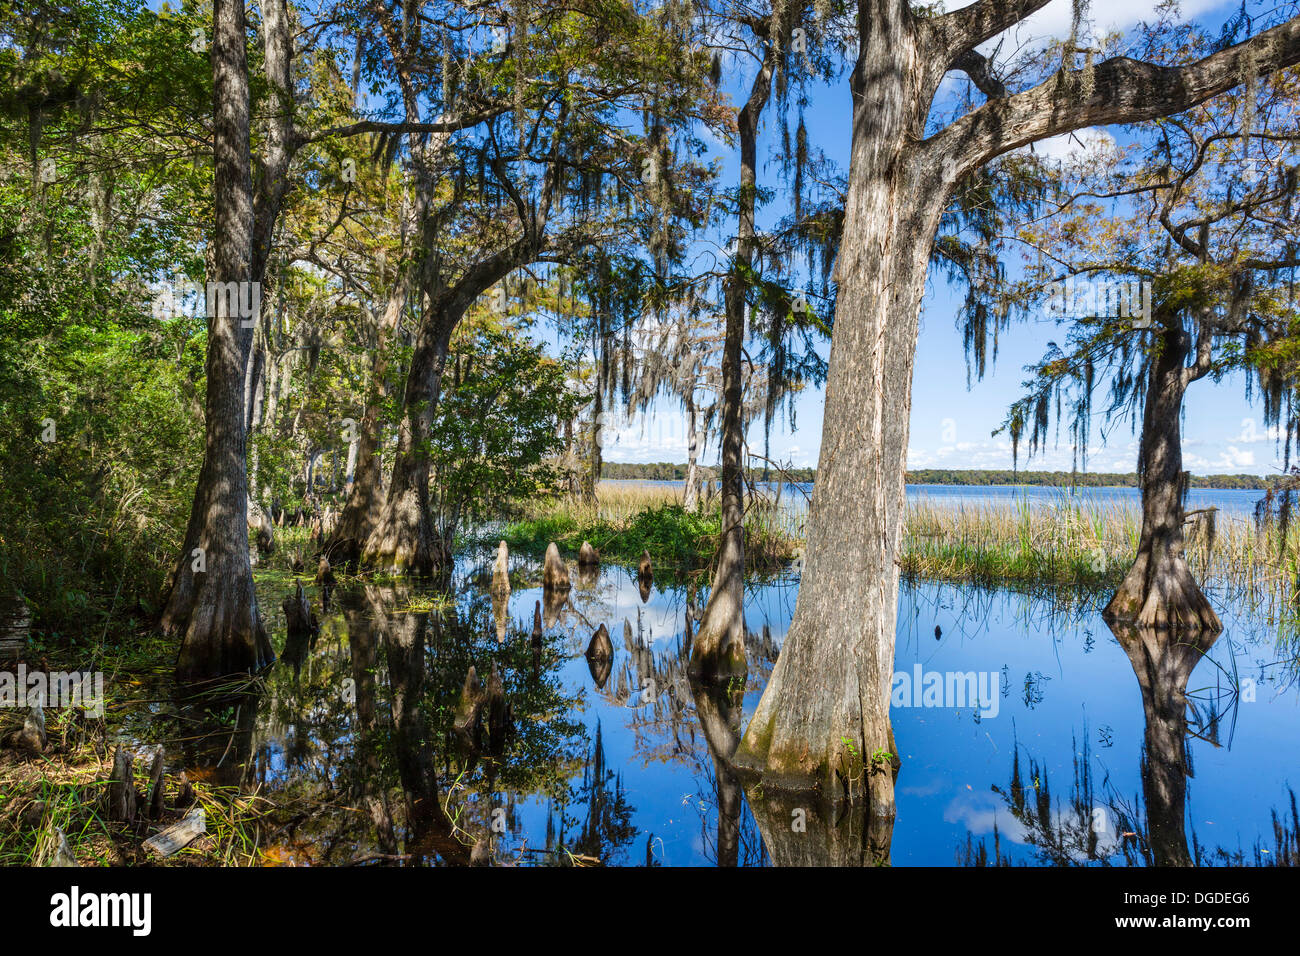 Lake Russell at the Nature Conservancy Disney Wilderness Preserve, Poinciana, Kissimmee, near Orlando, Central Florida, USA - Stock Image